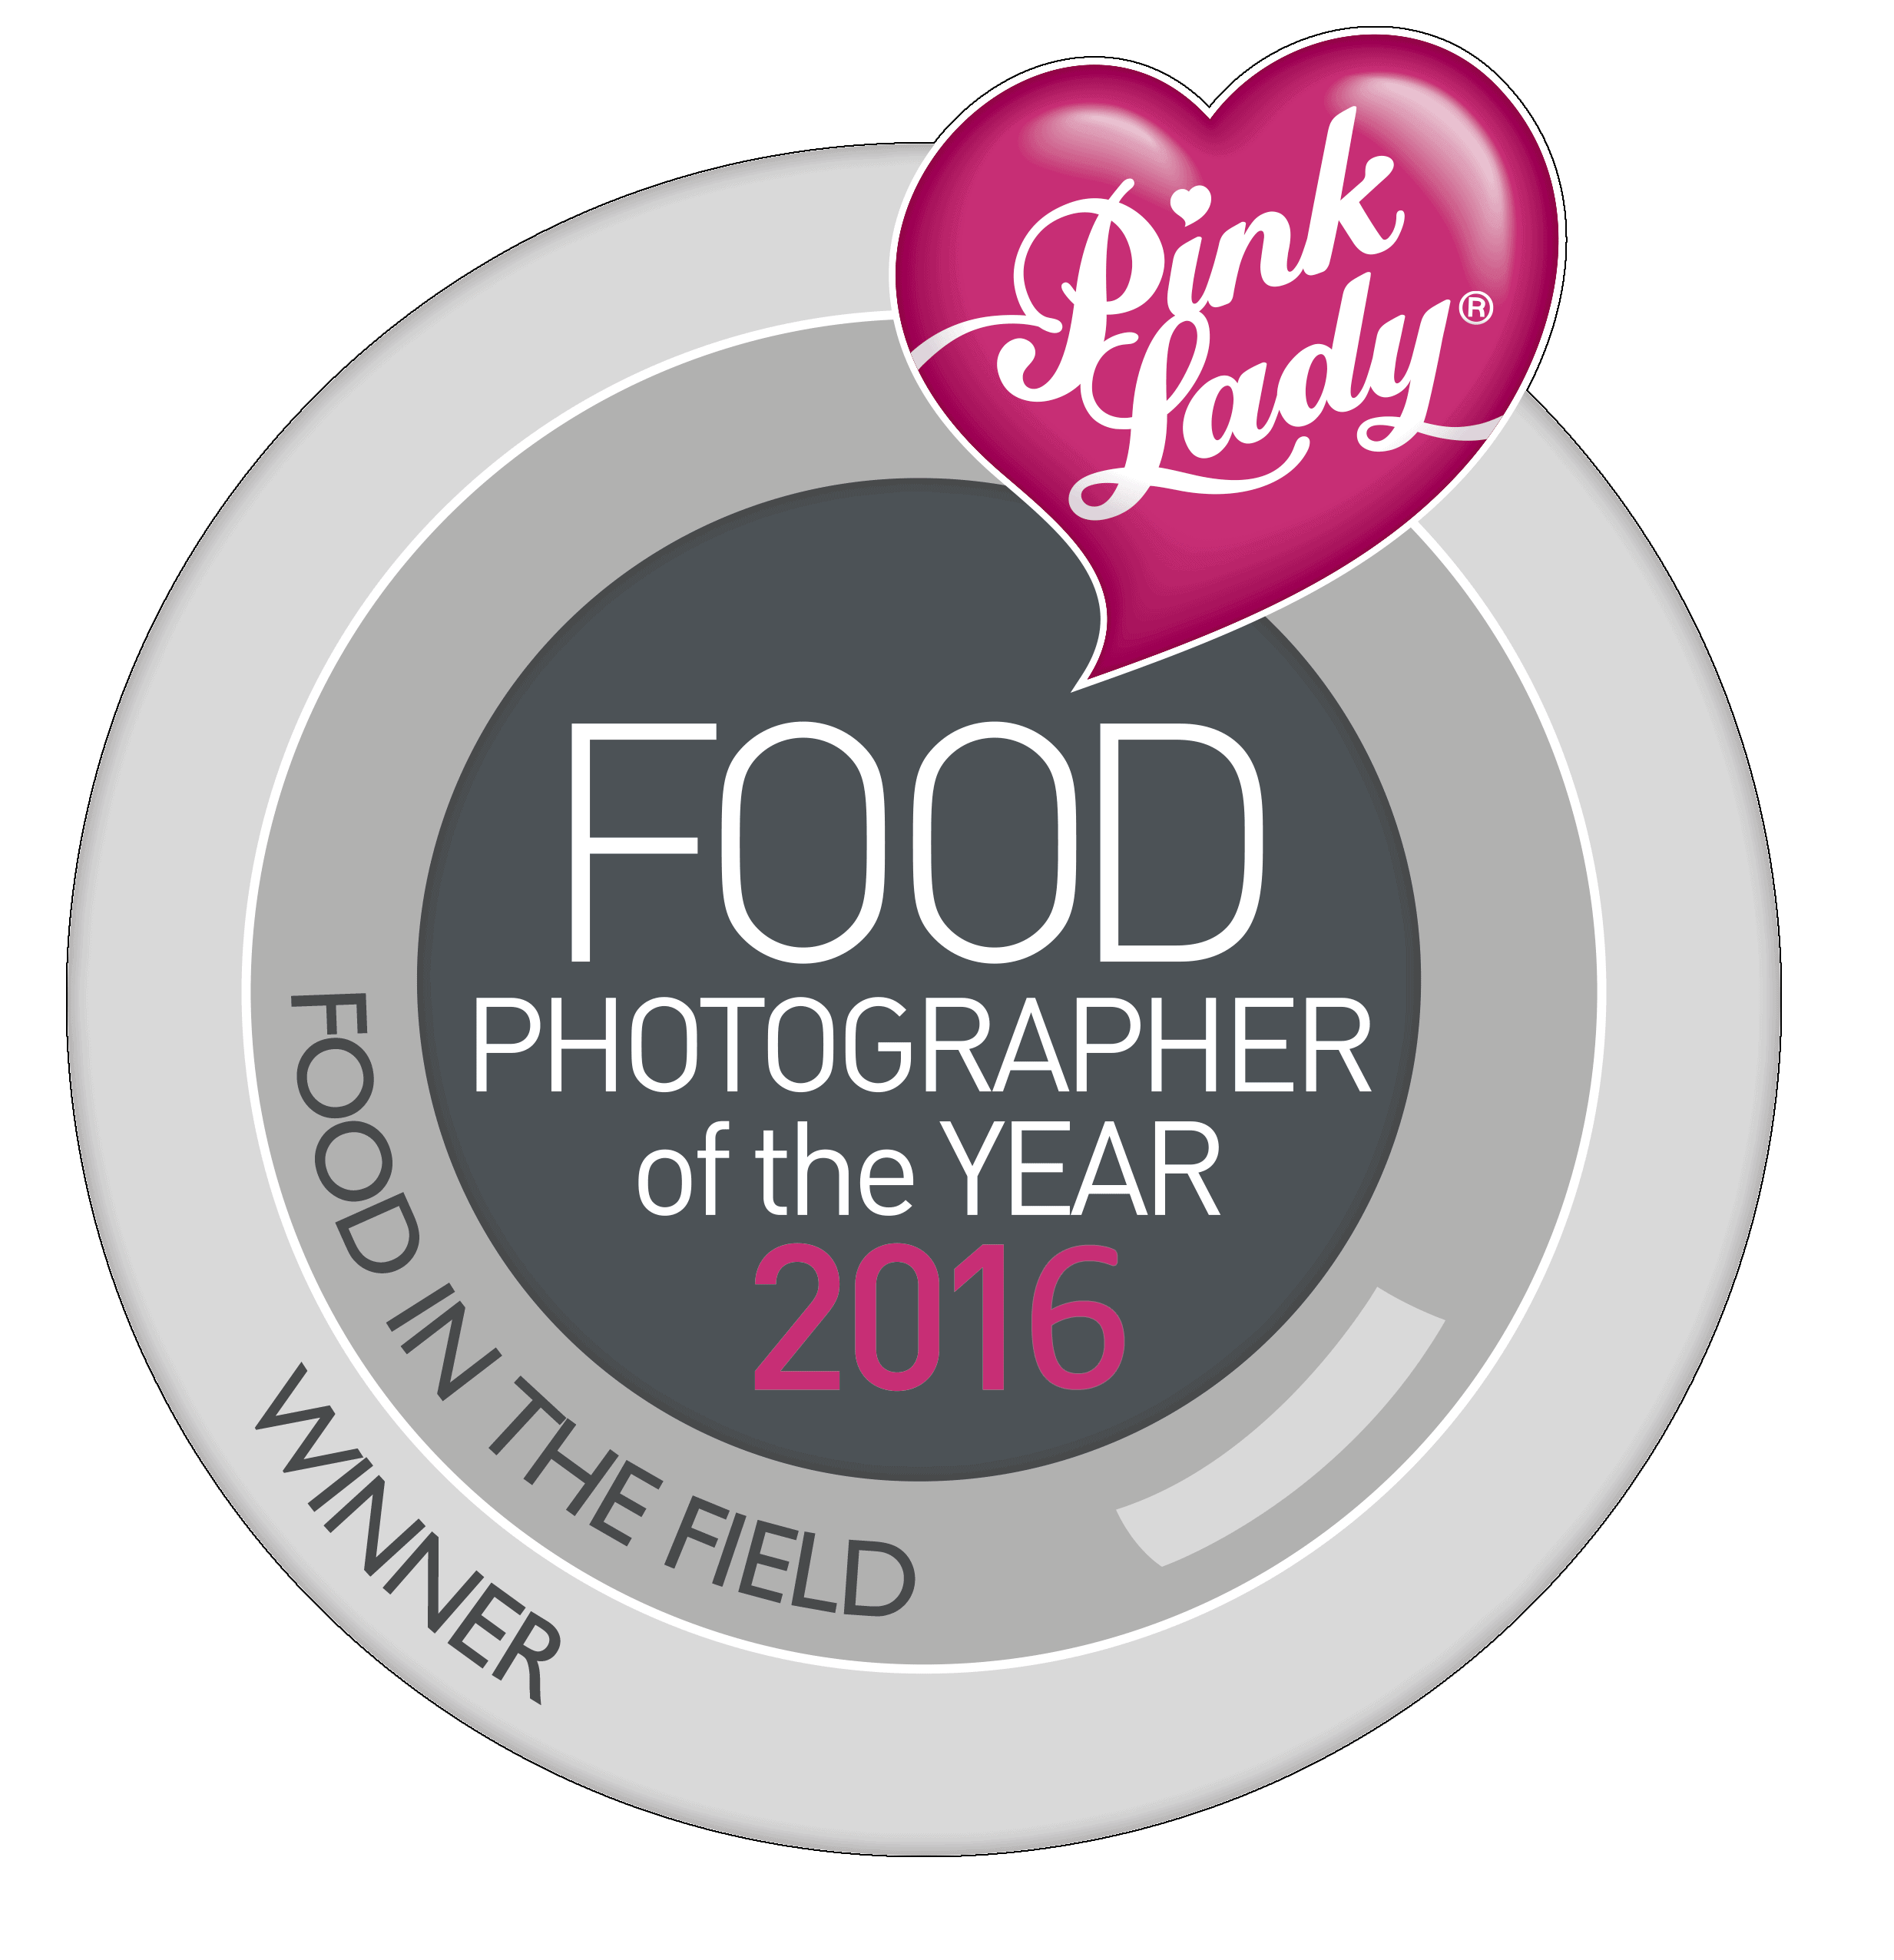 Robin Goodlad Dorset food photographer and winner of the Food in the field category, Pink Lady Food Photographer of the year